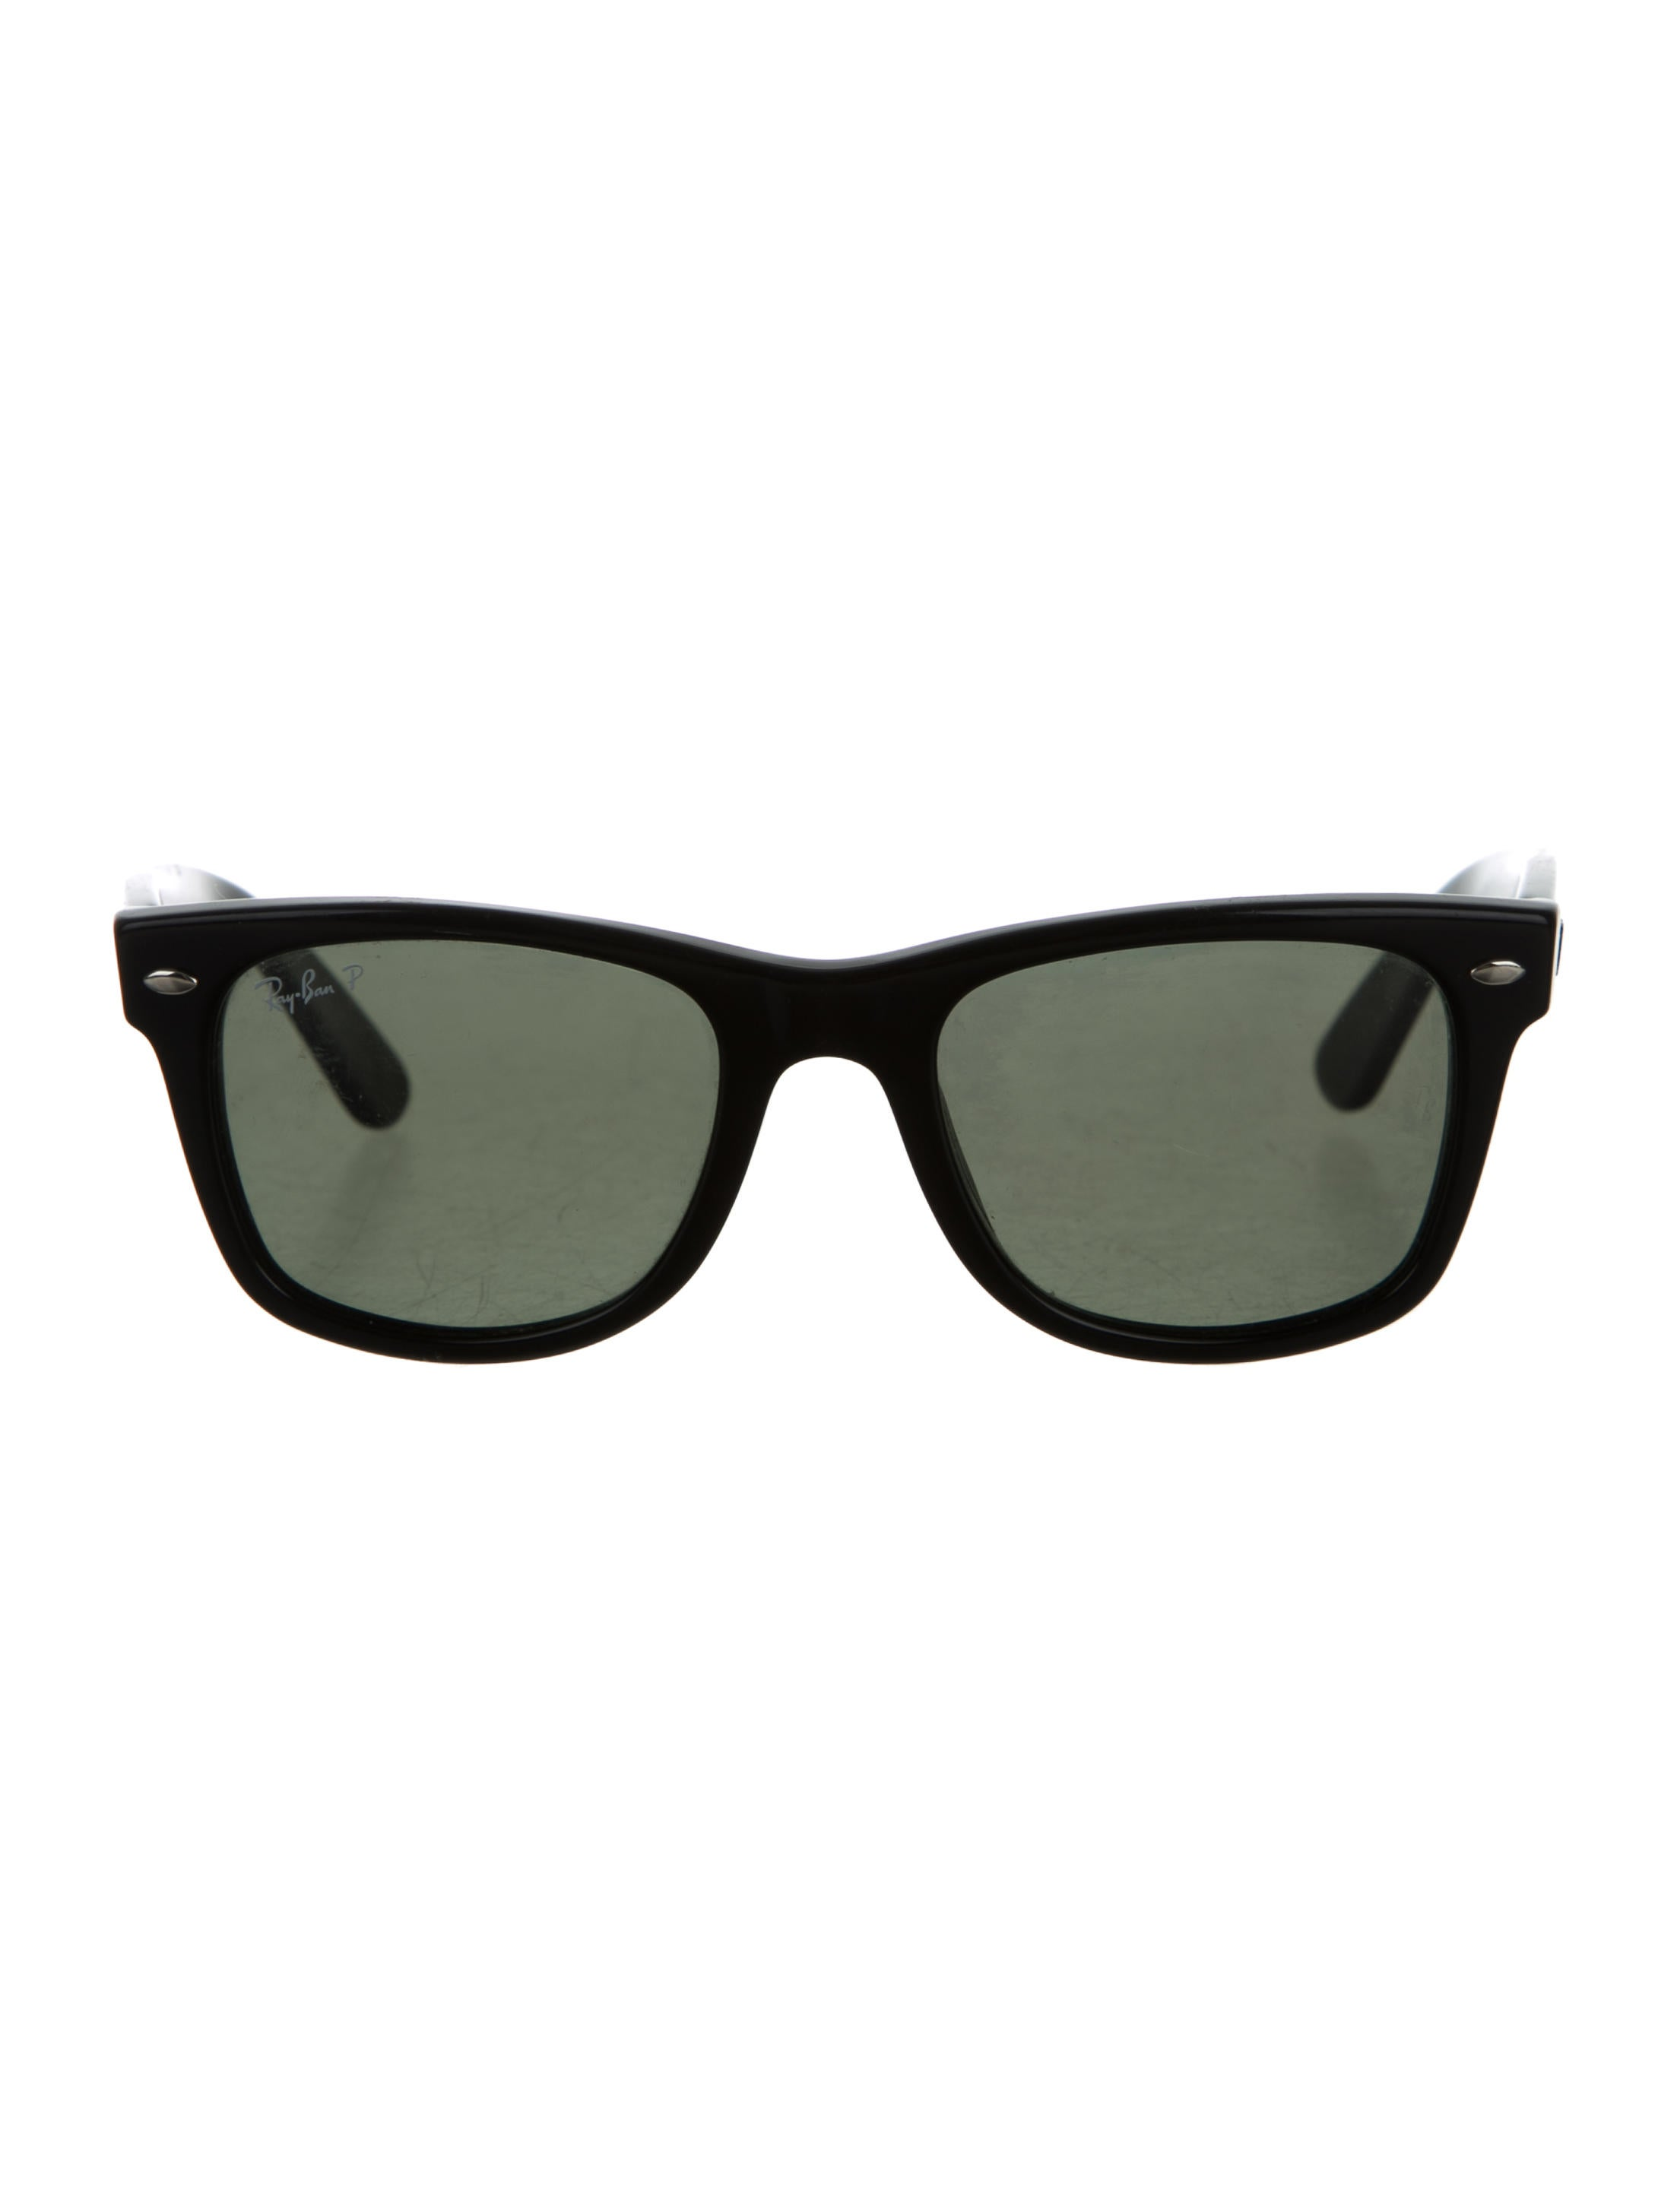 ray ban polarized wayfarer sunglasses accessories. Black Bedroom Furniture Sets. Home Design Ideas